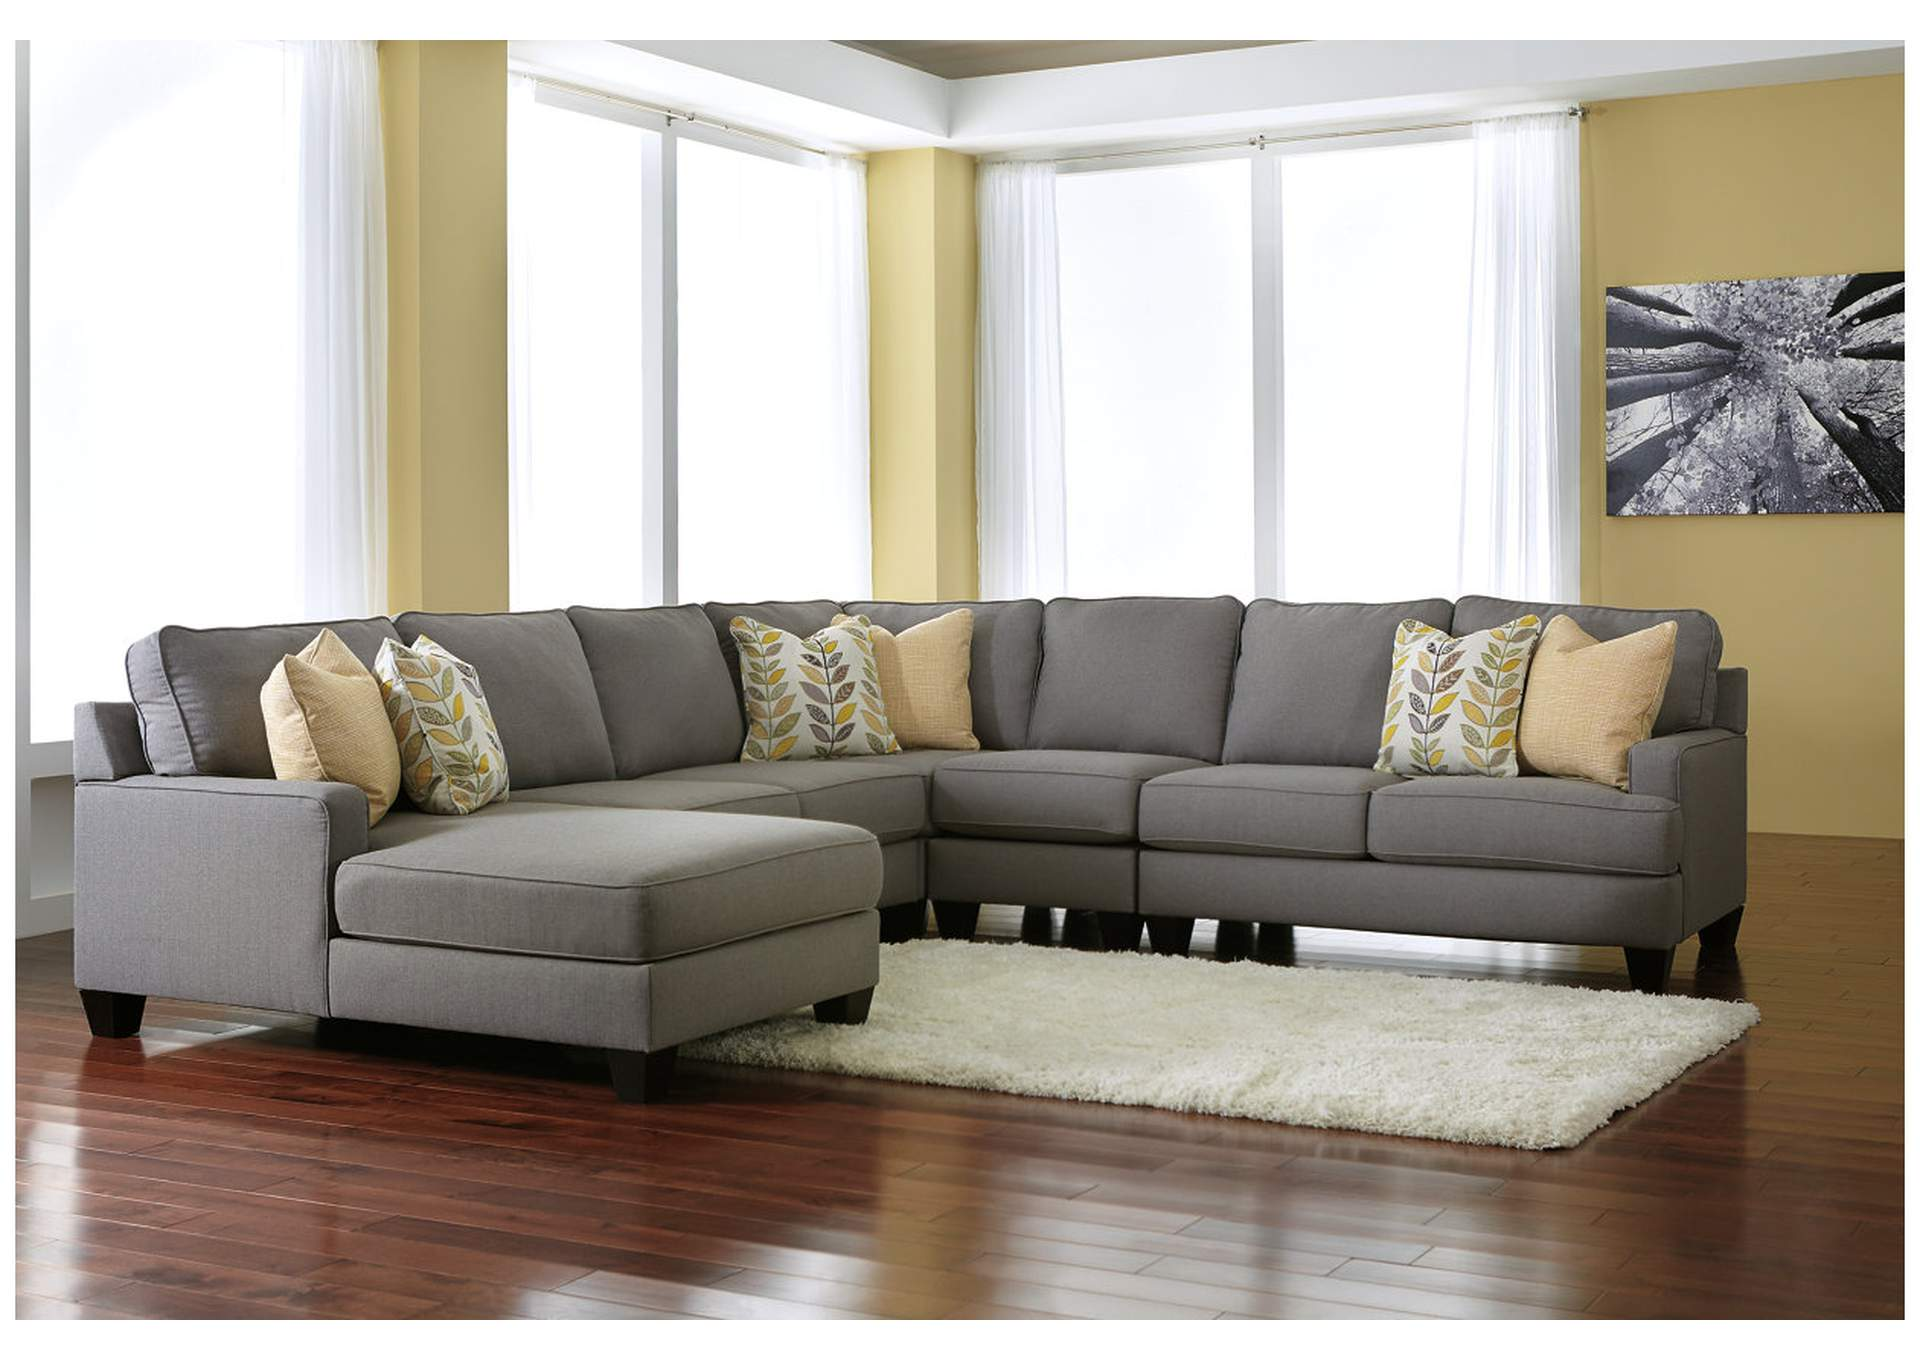 Chamberly Alloy Left Arm Facing Chaise End Extended Sectional,Signature Design By Ashley